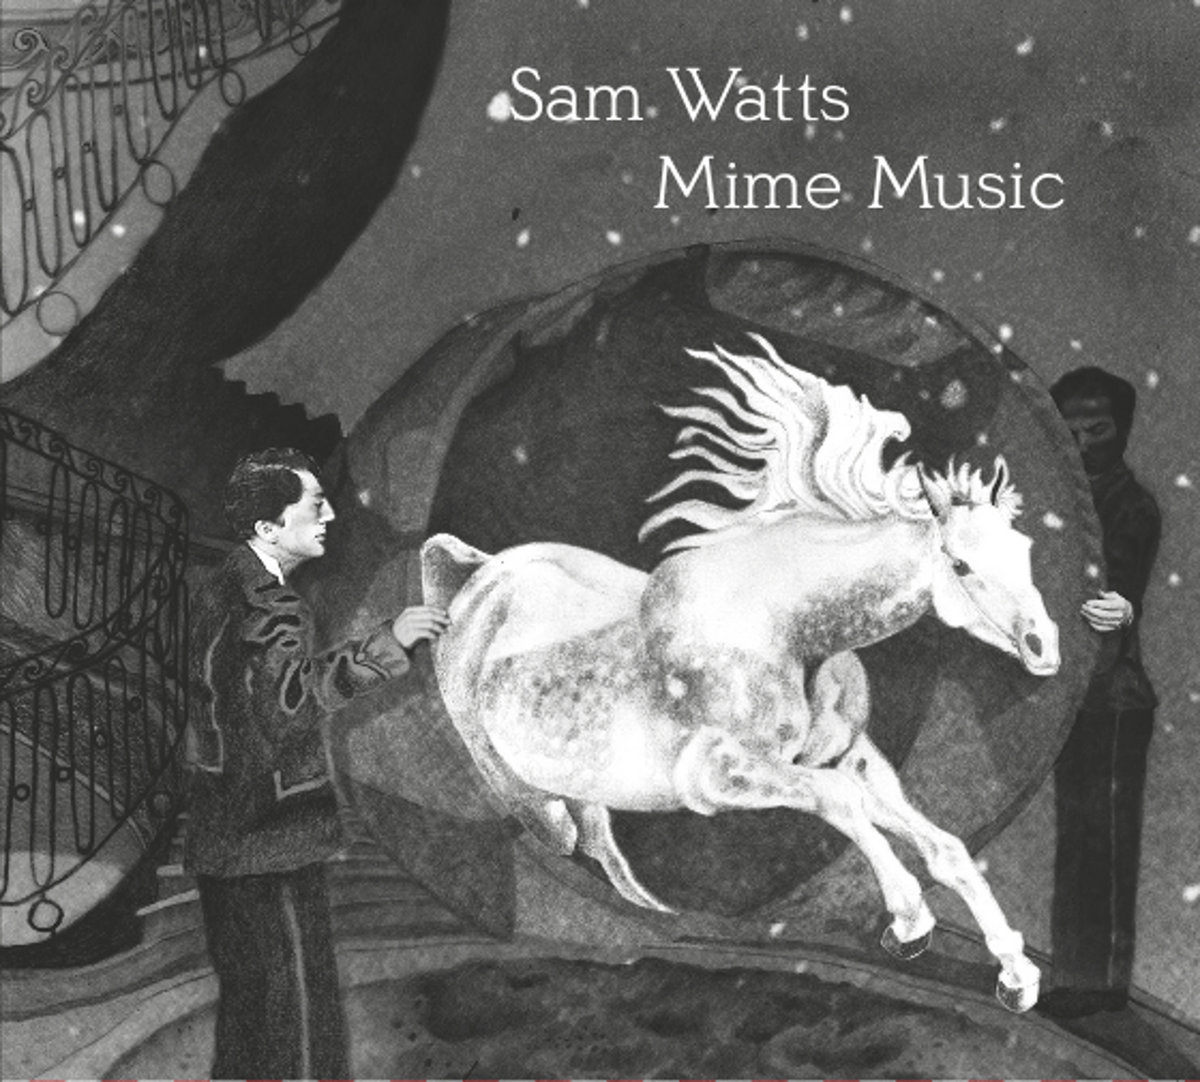 Deanna loves fame, mime jr. , and showers by hester on amazon music.